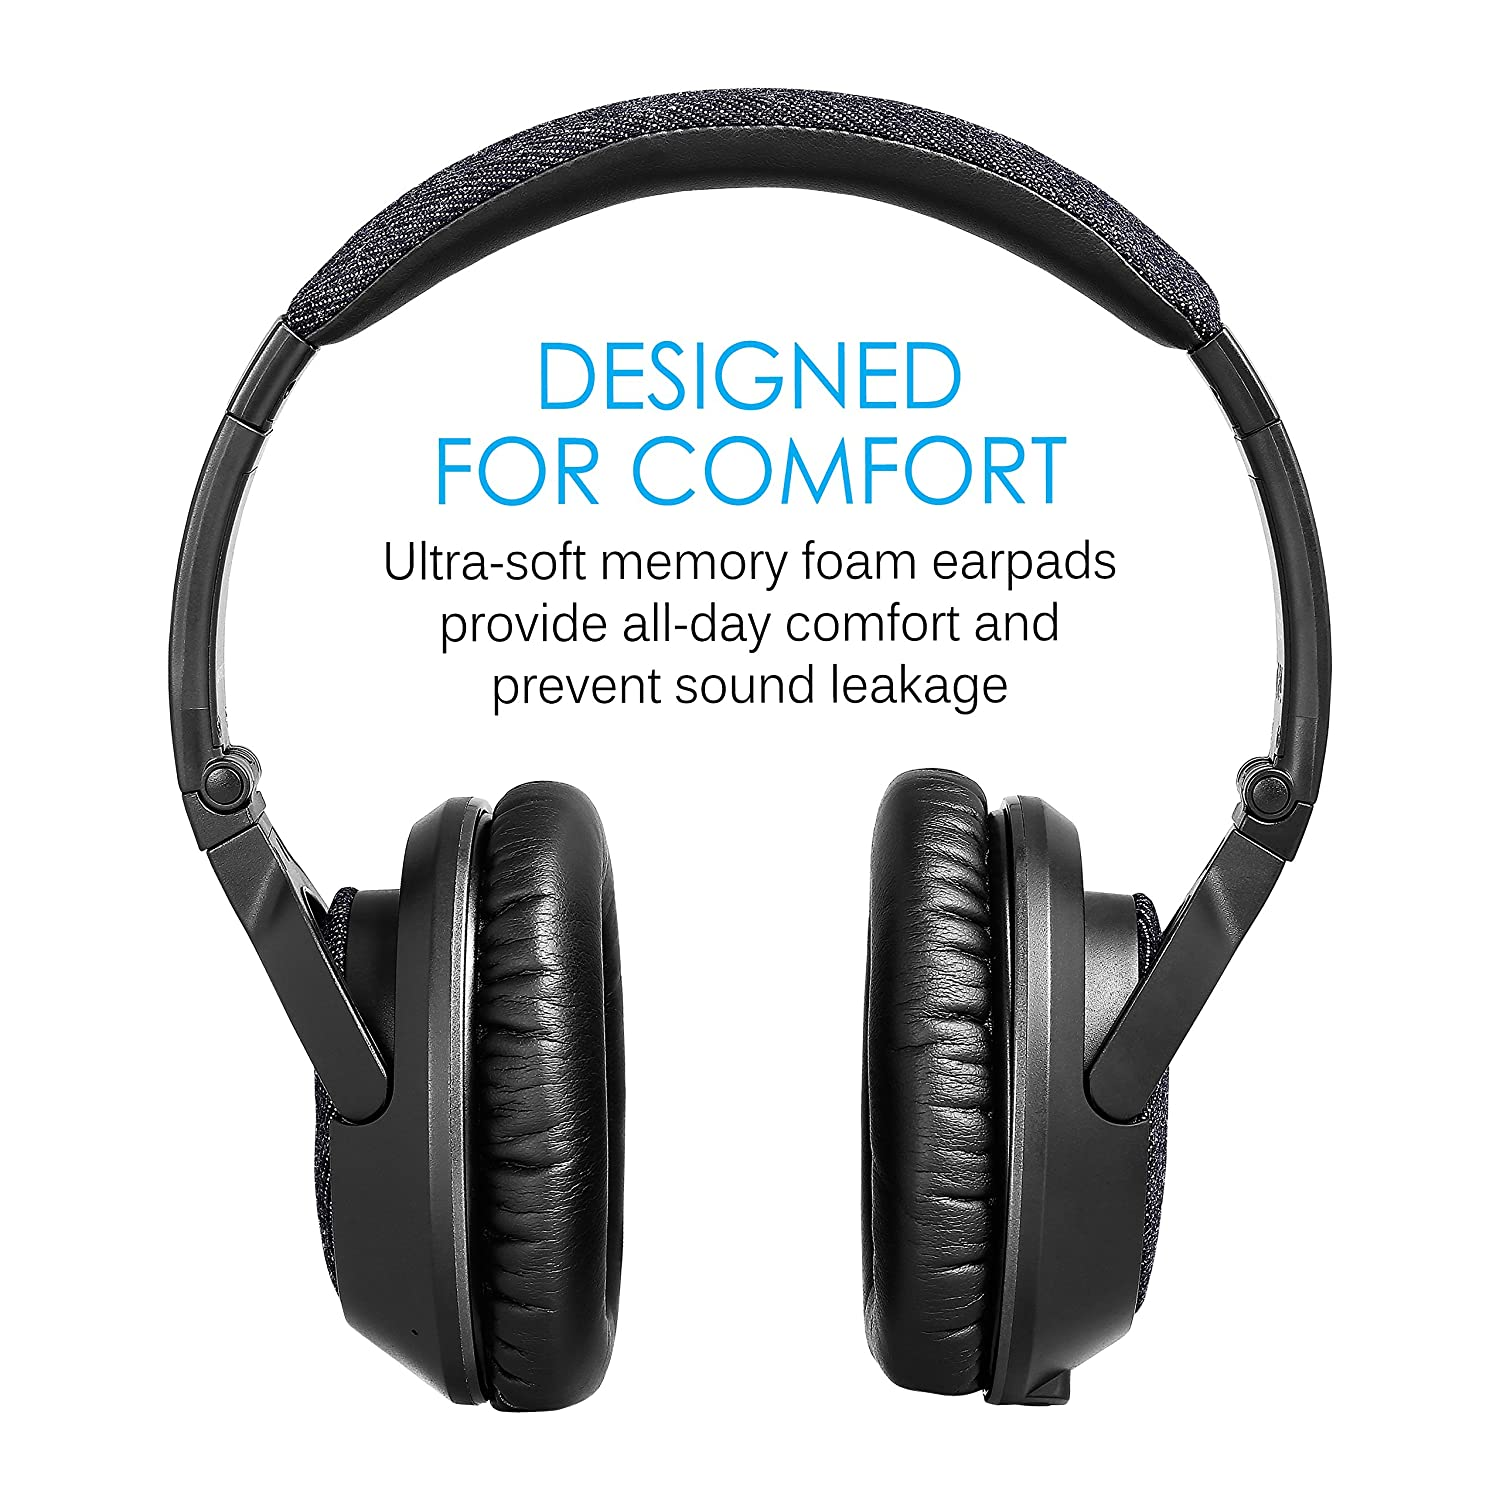 Zip Up Headphones Amazoncom Mee Audio Matrix3 Bluetooth With Aptx Aac Wireless